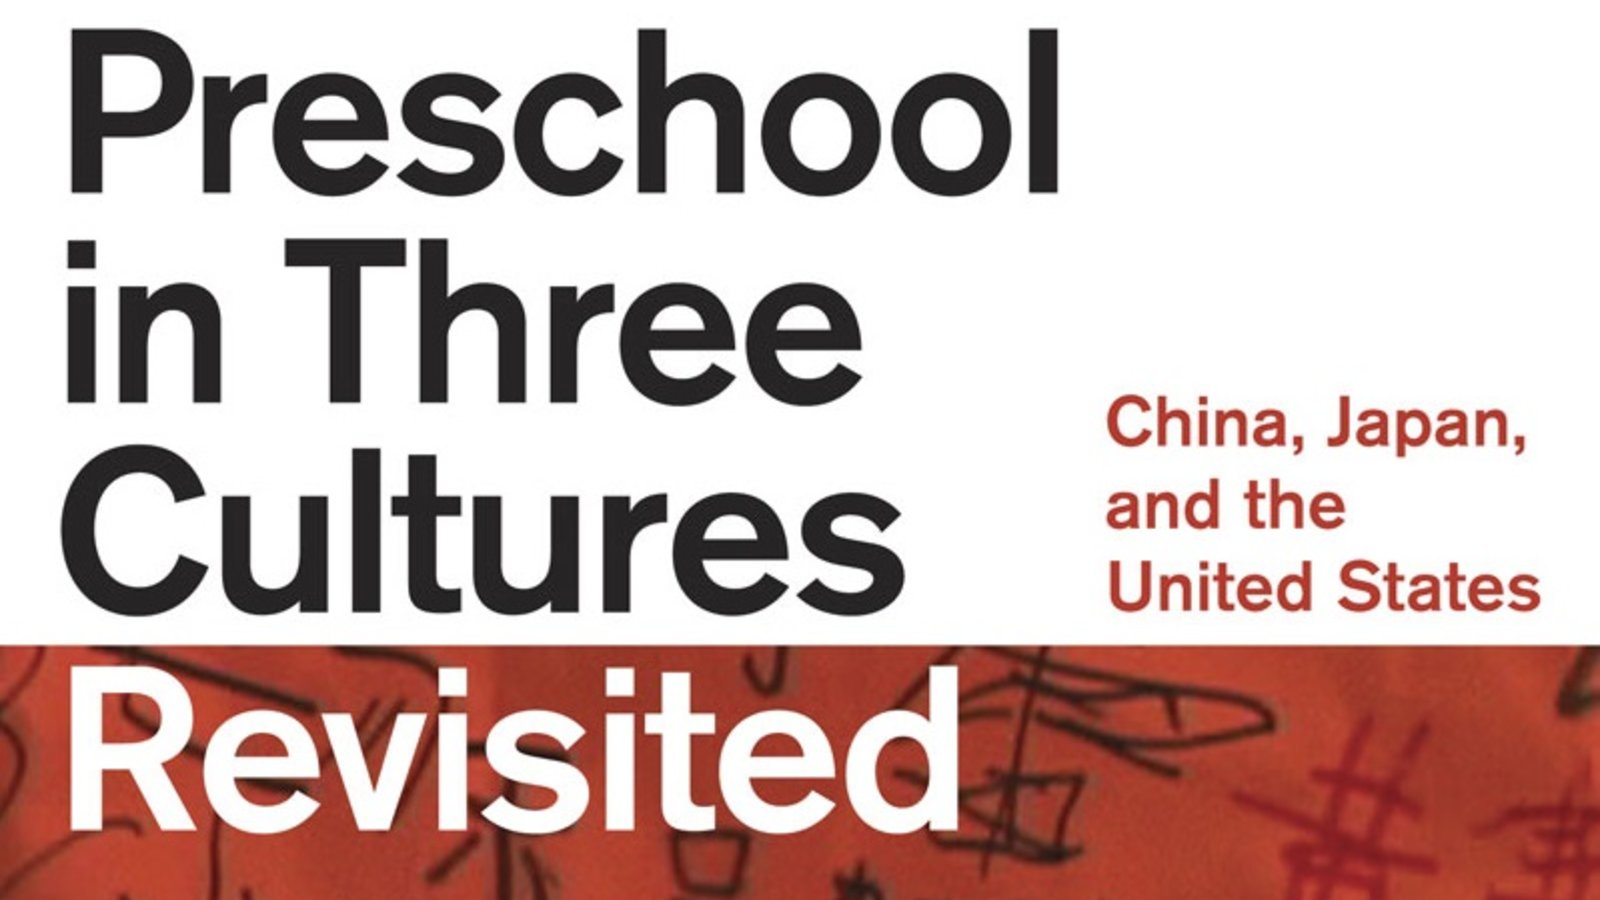 The Preschool in Three Cultures Revisited | Kanopy